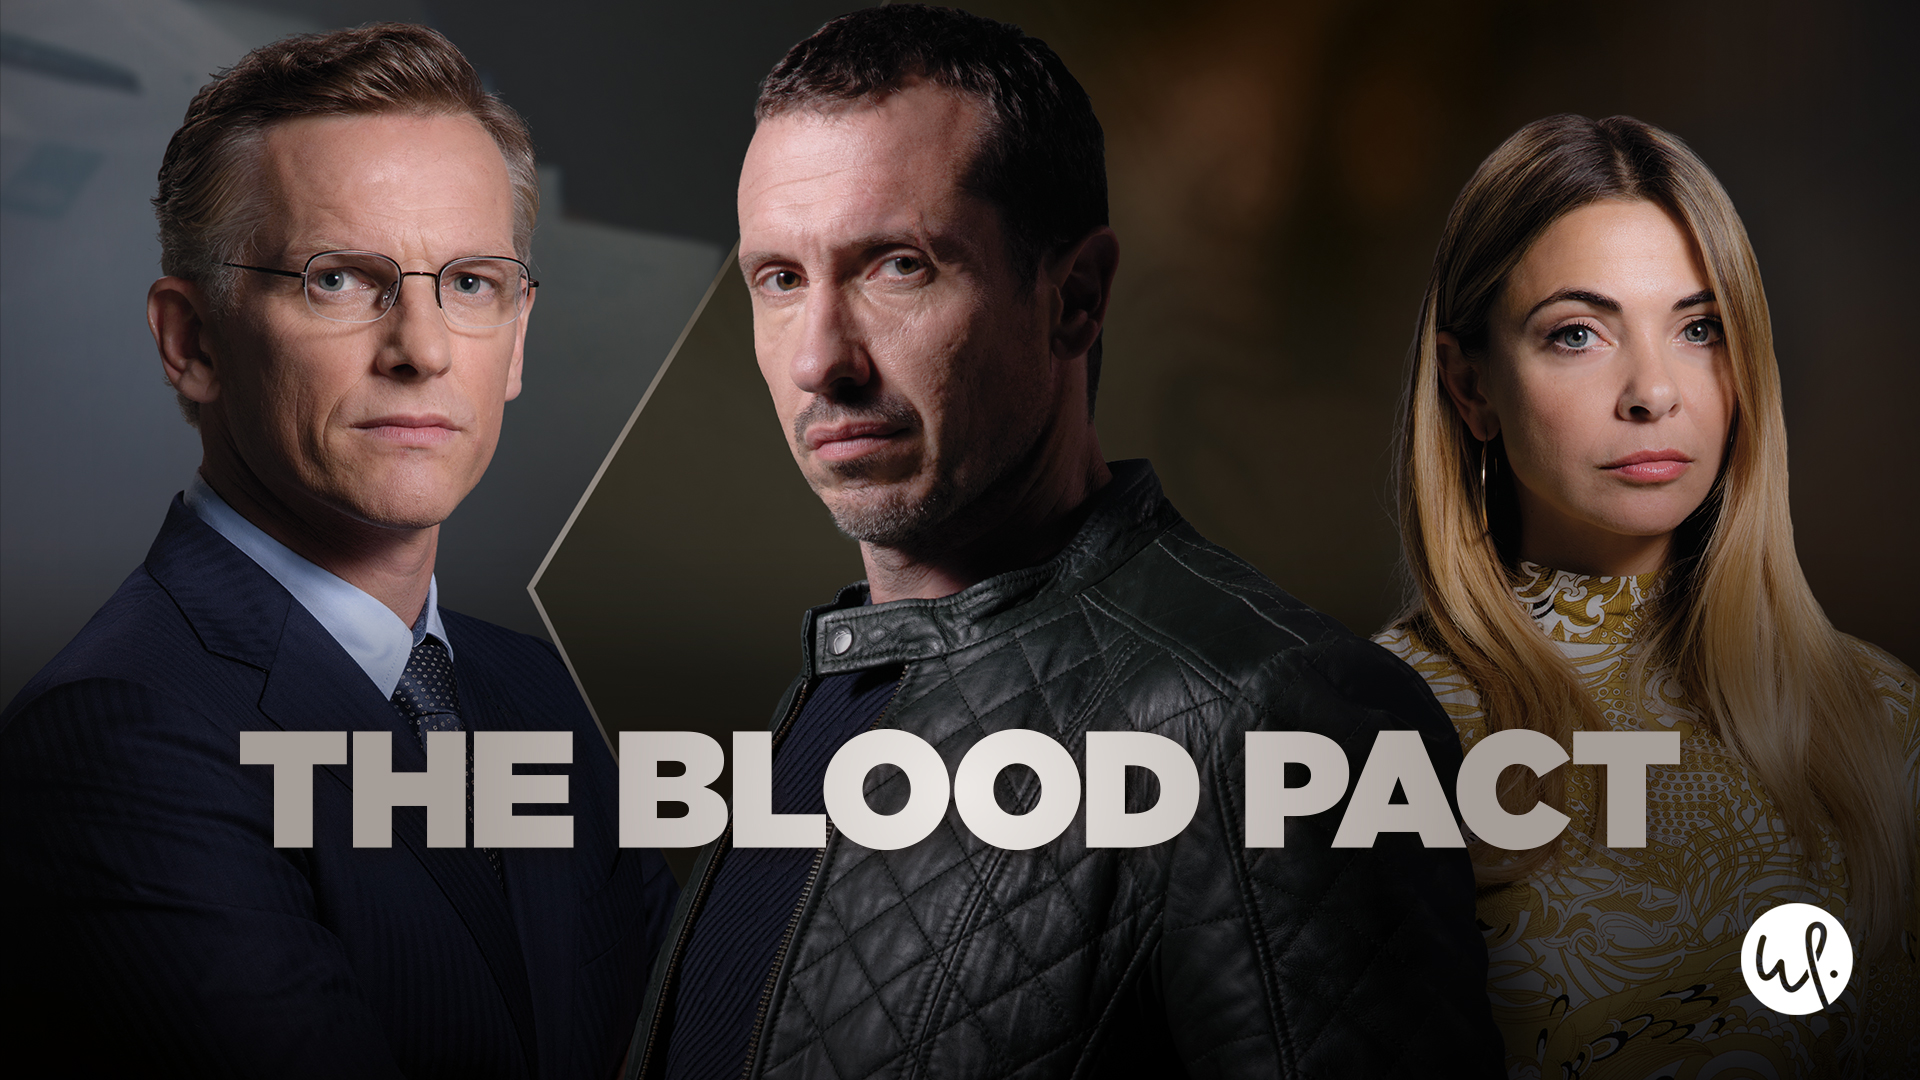 The Blood Pact: Season 1